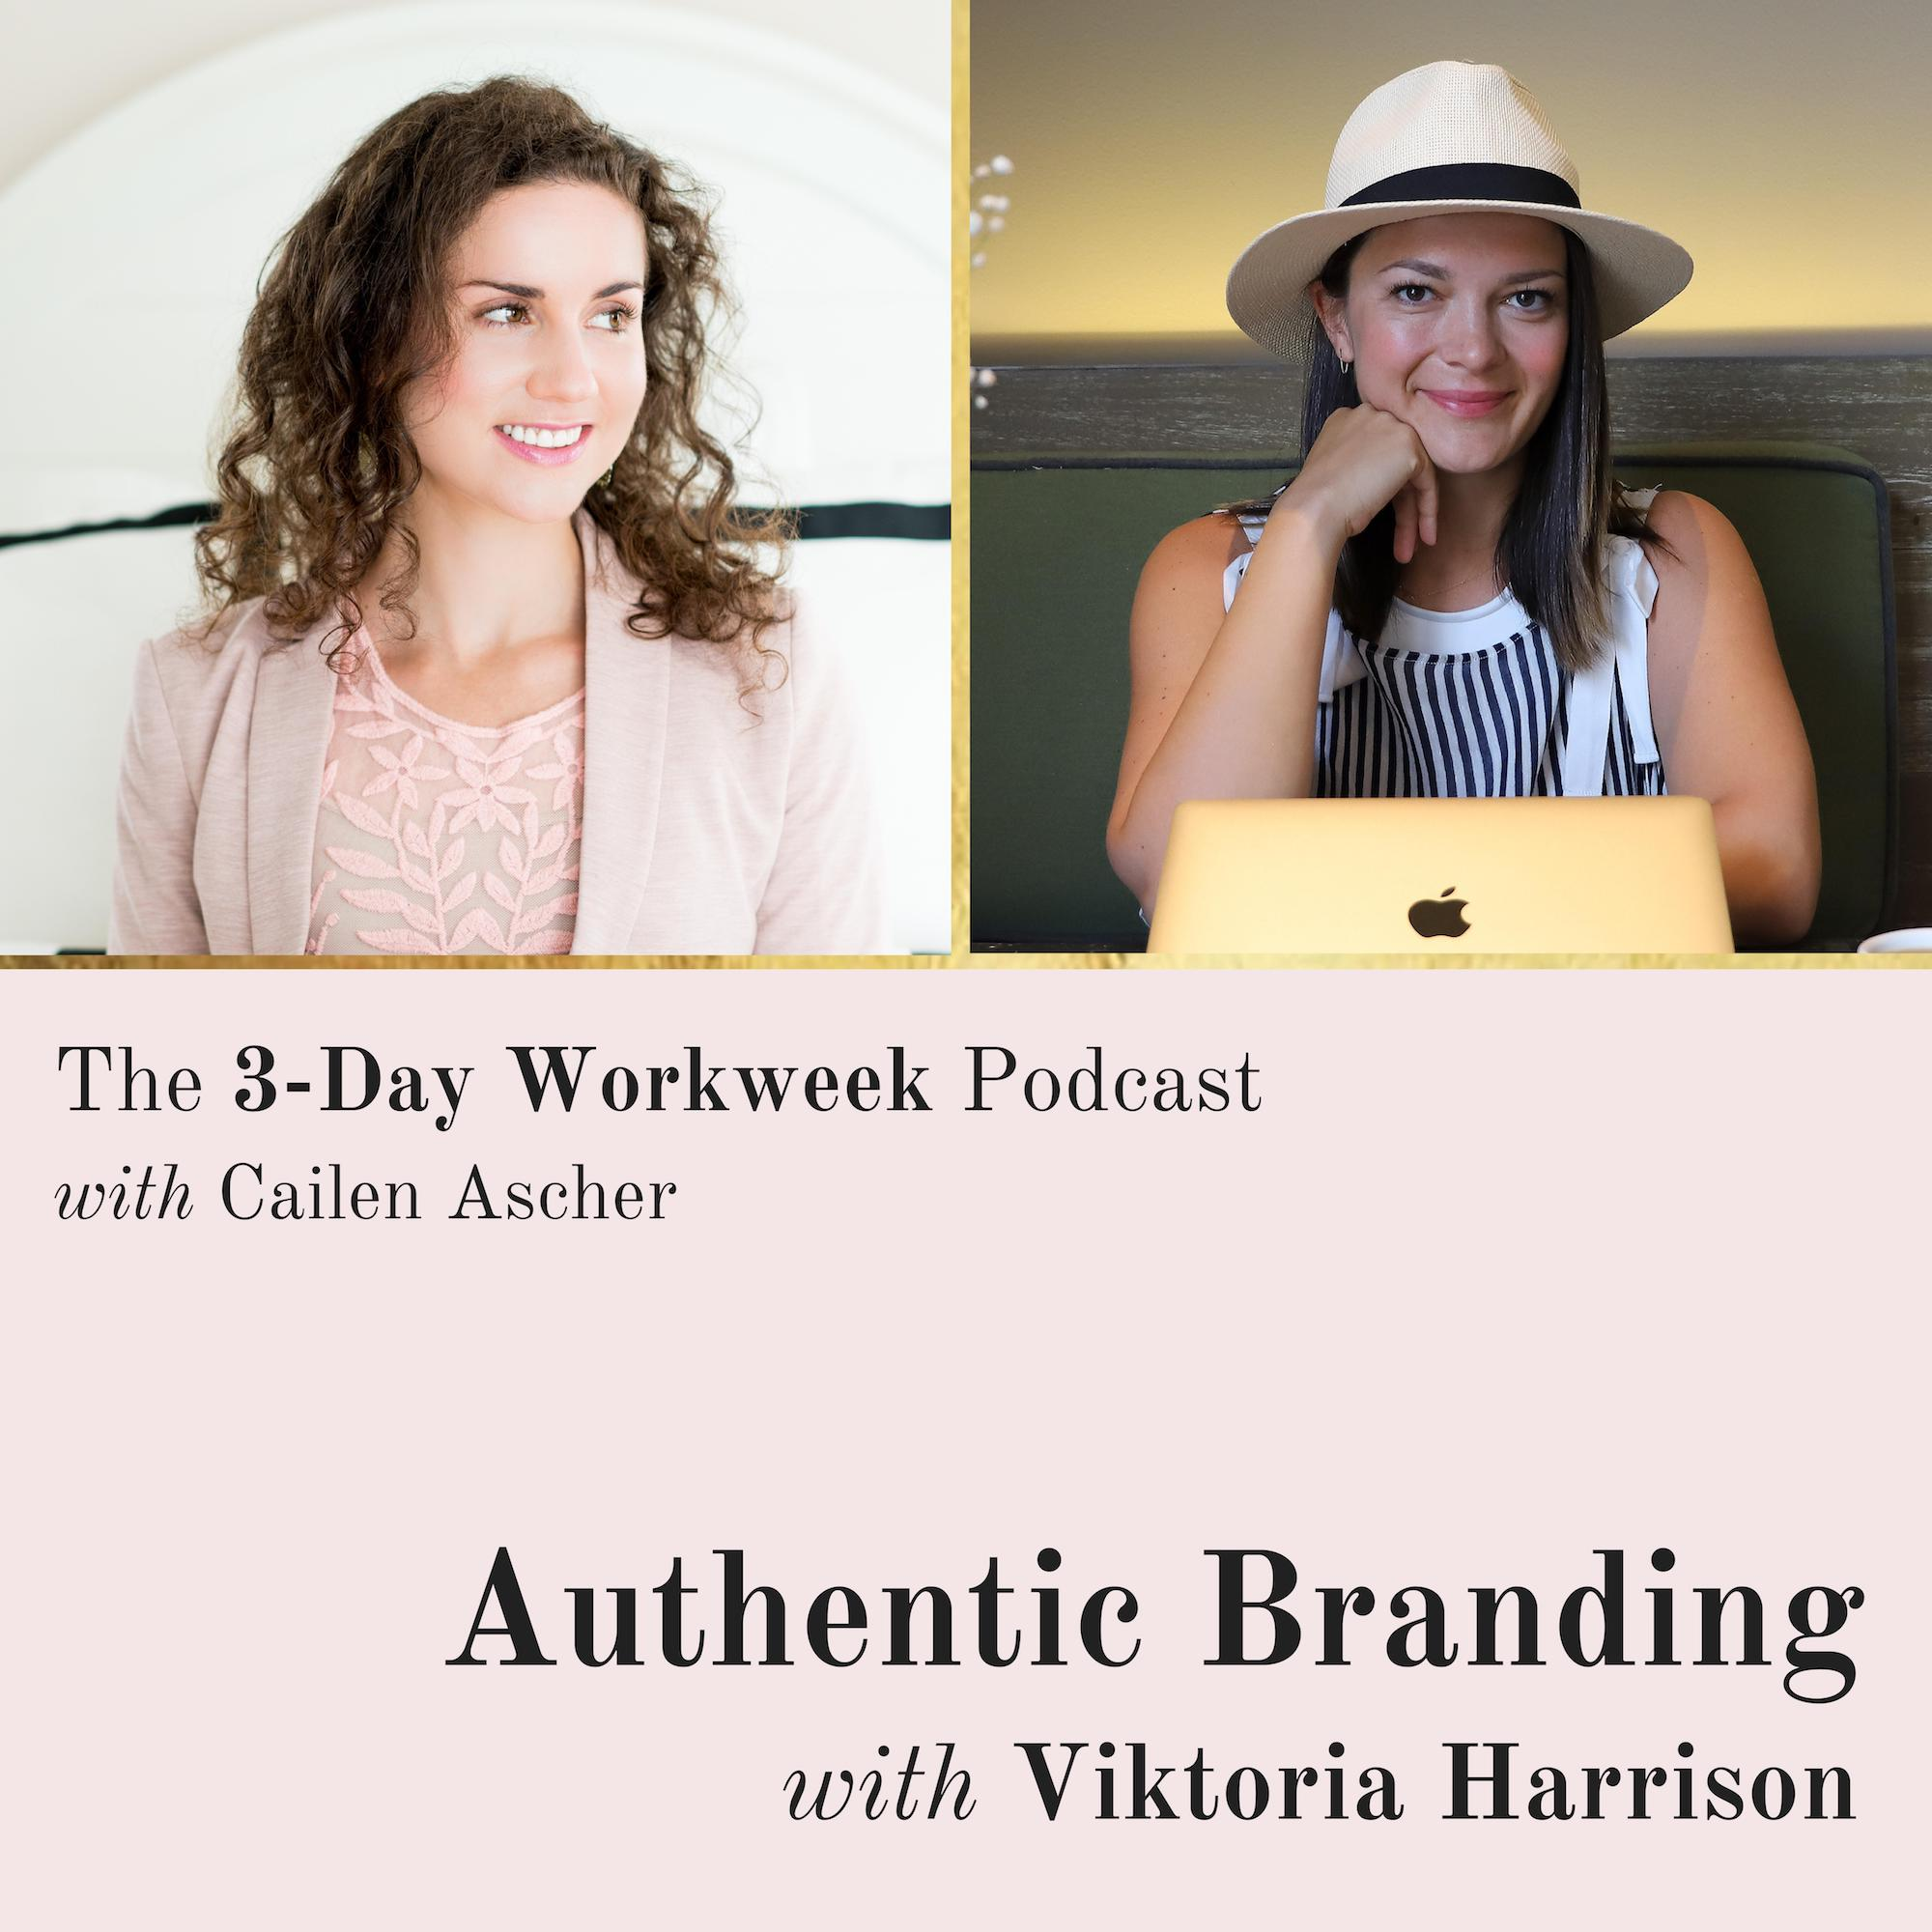 The 3-Day Workweek Podcast with Cailen Ascher - 2019-07-03 - You Are Enough with Heather Chauvin.jpg